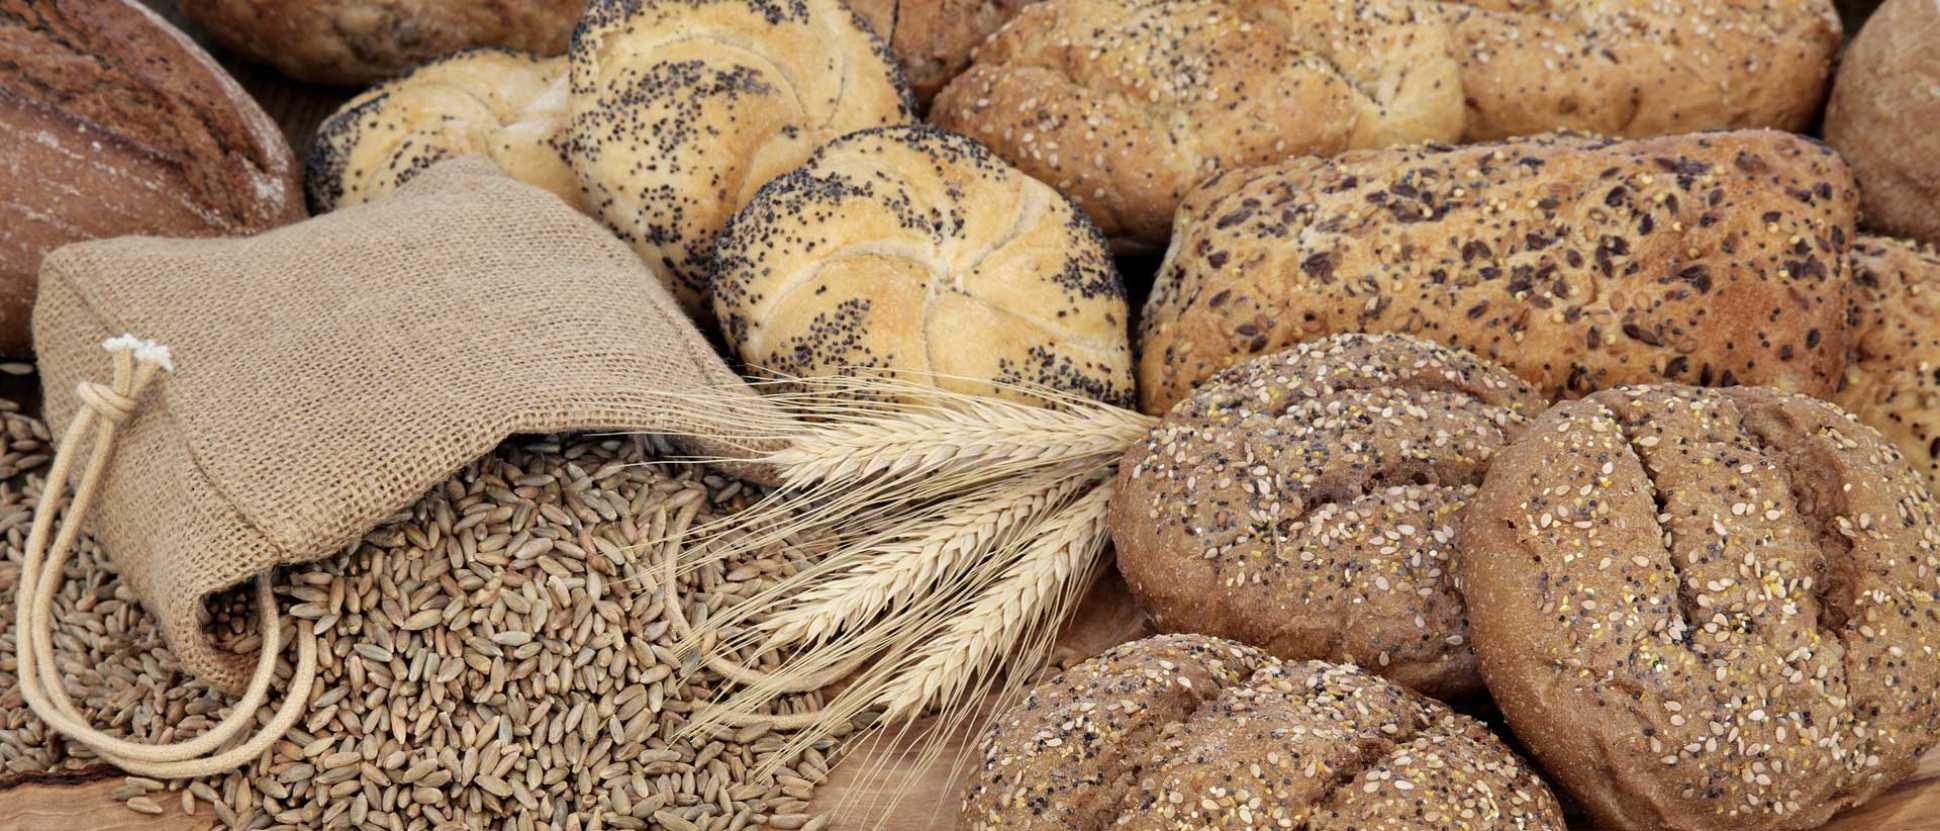 161011-Ancient-grains-benefit-cardiovascular-healthjpg